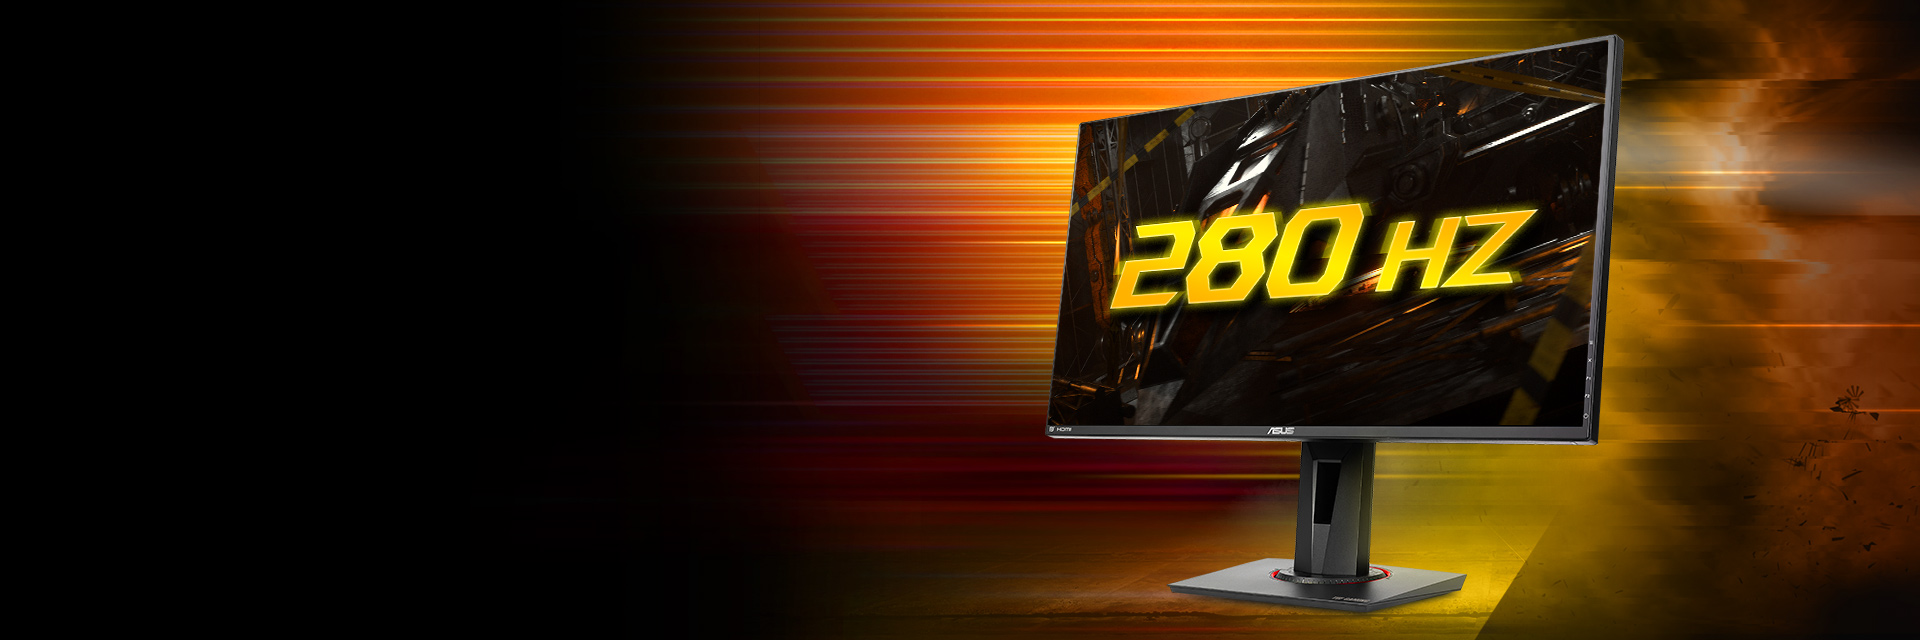 the monitor facing left with a 280hz effect image as screen